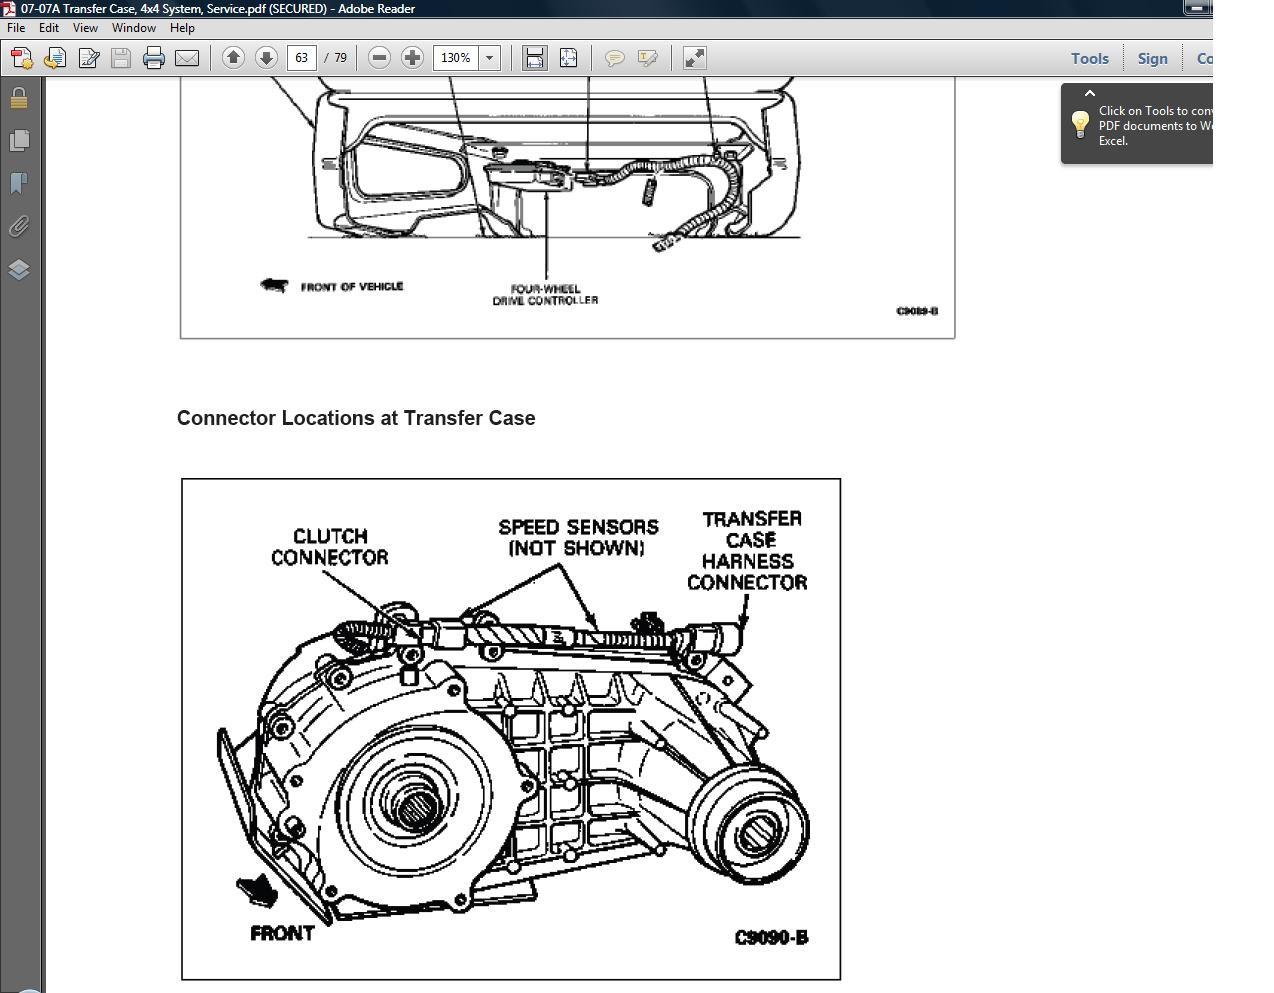 1994 ford ranger repair manual